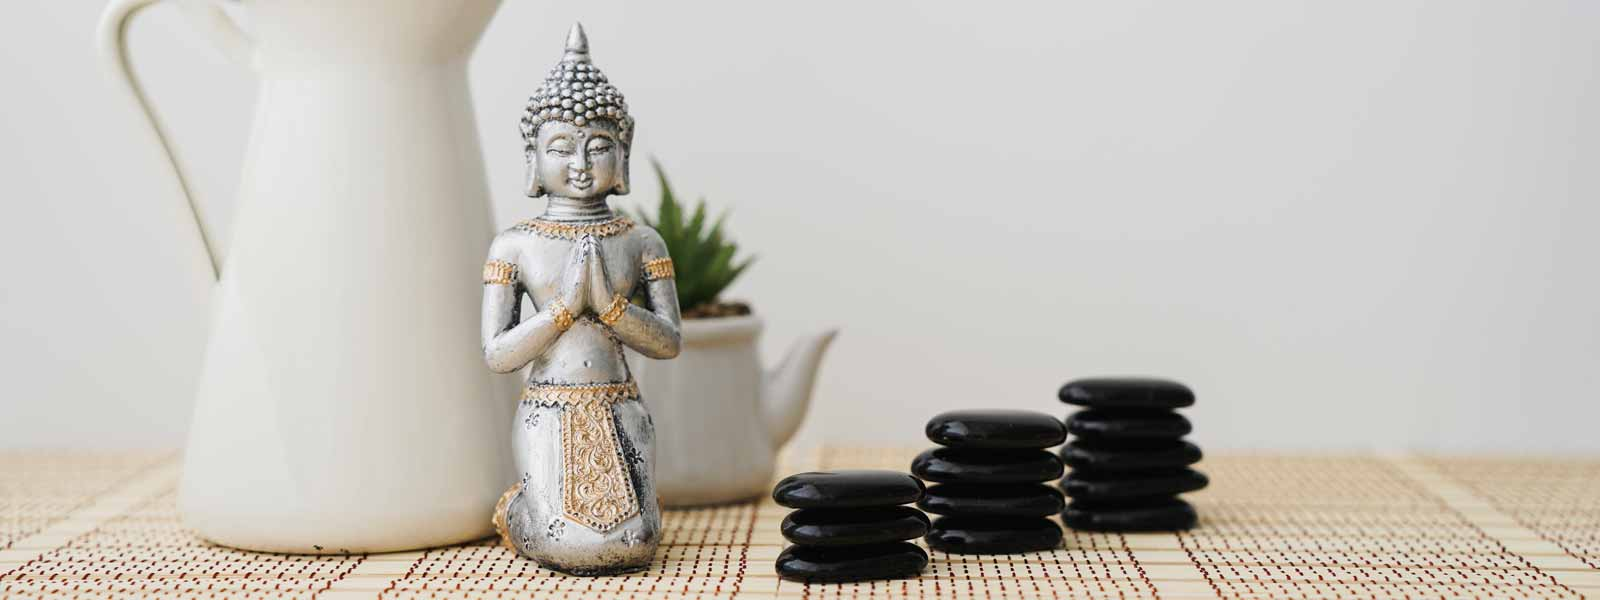 Buddha - Designed by Freepik